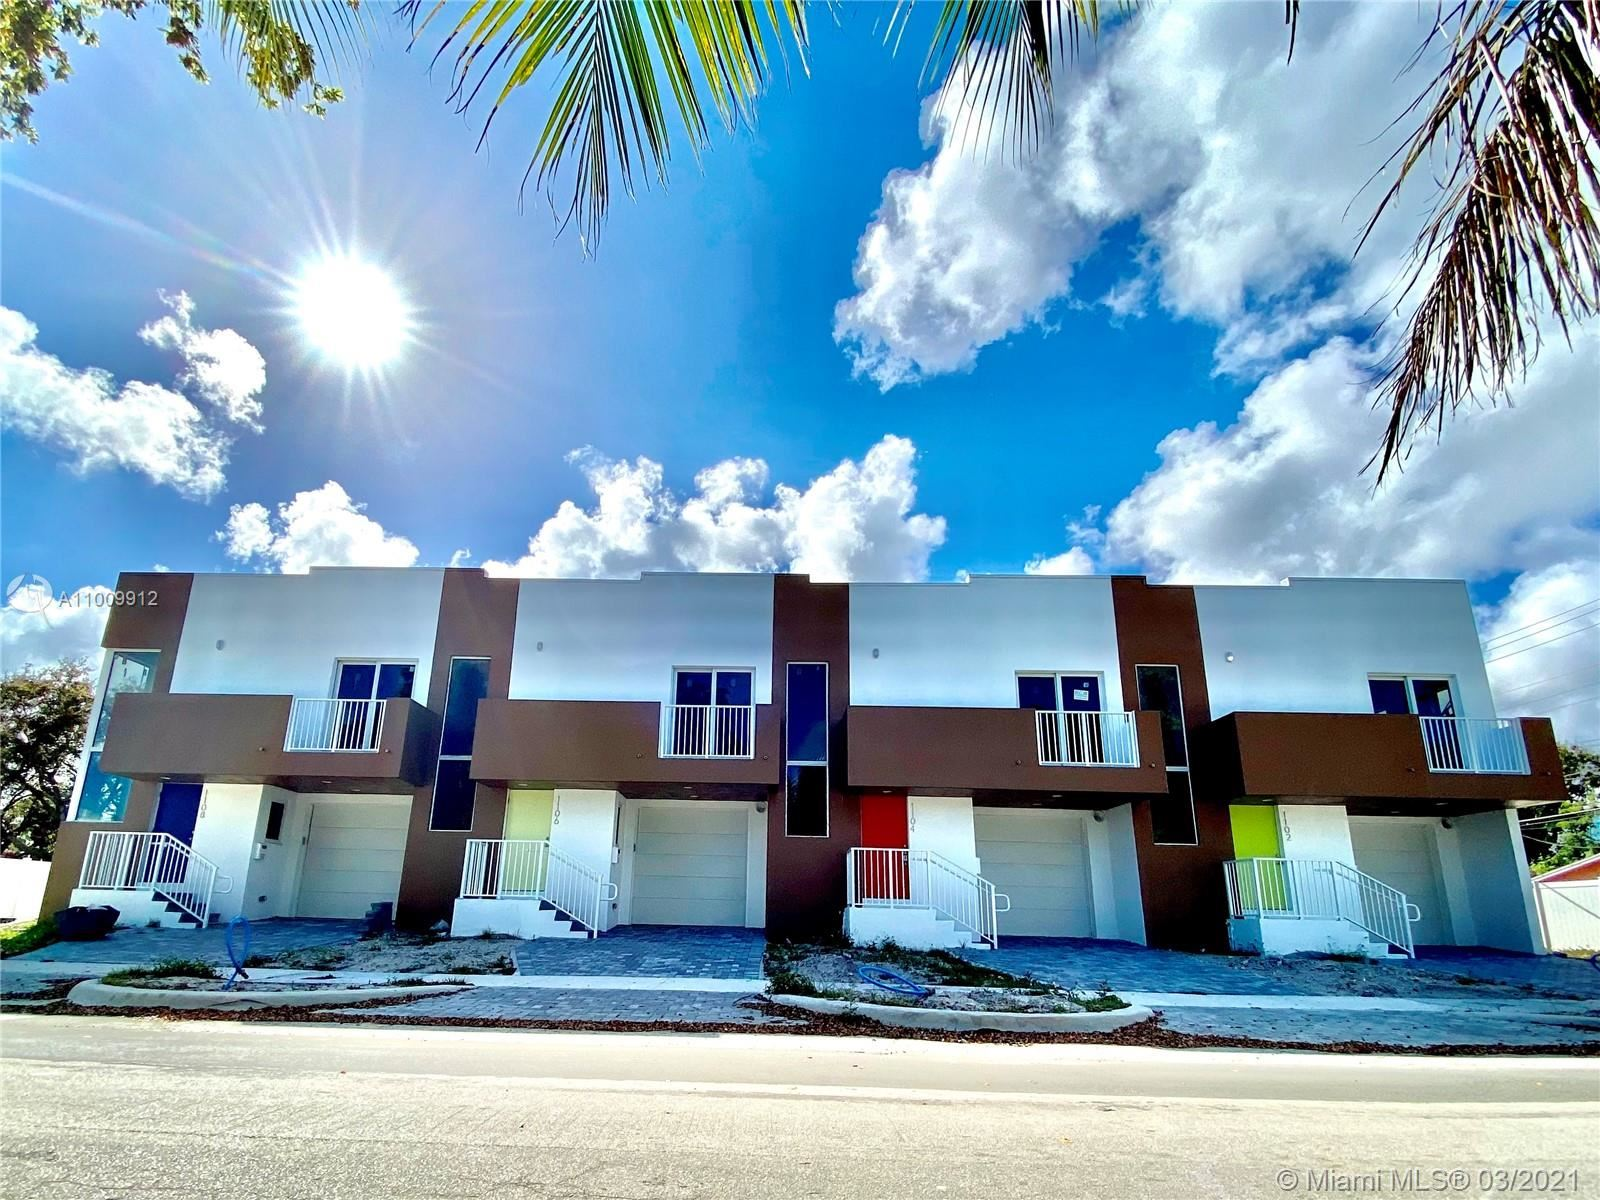 1106 S 20th Ave #1106, Hollywood, FL 33020 - #: A11009912